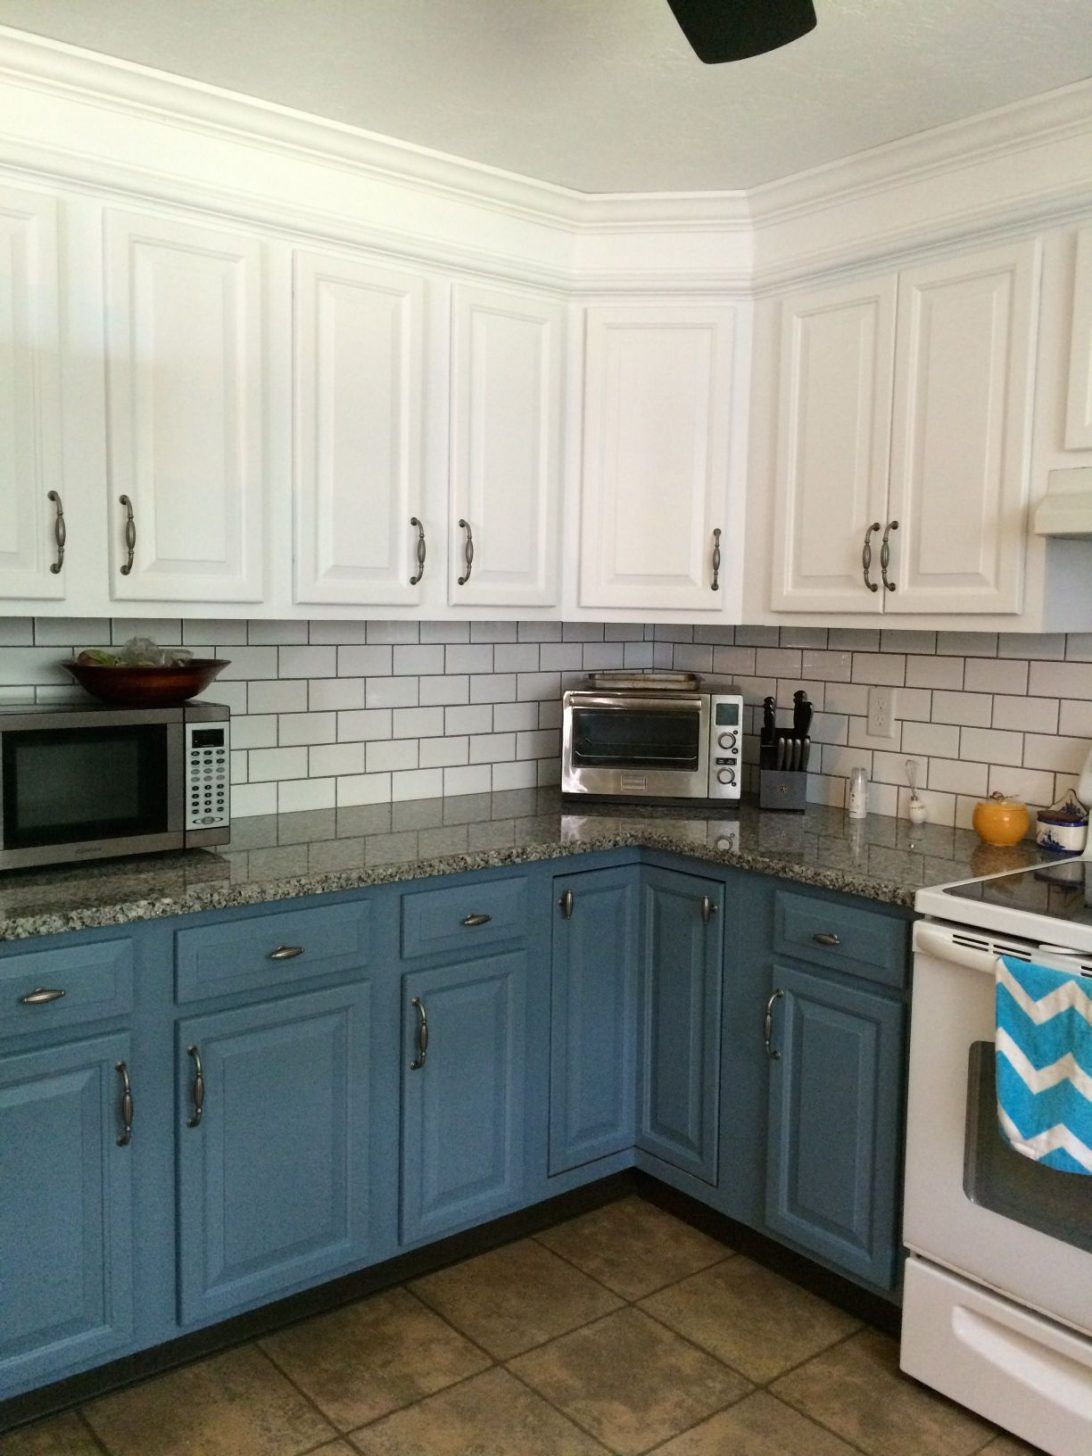 Image Result For Subway Tile Kitchen Color With Slate Appliance Upper Kitchen Cabinets Trendy Kitchen Tile New Kitchen Cabinets